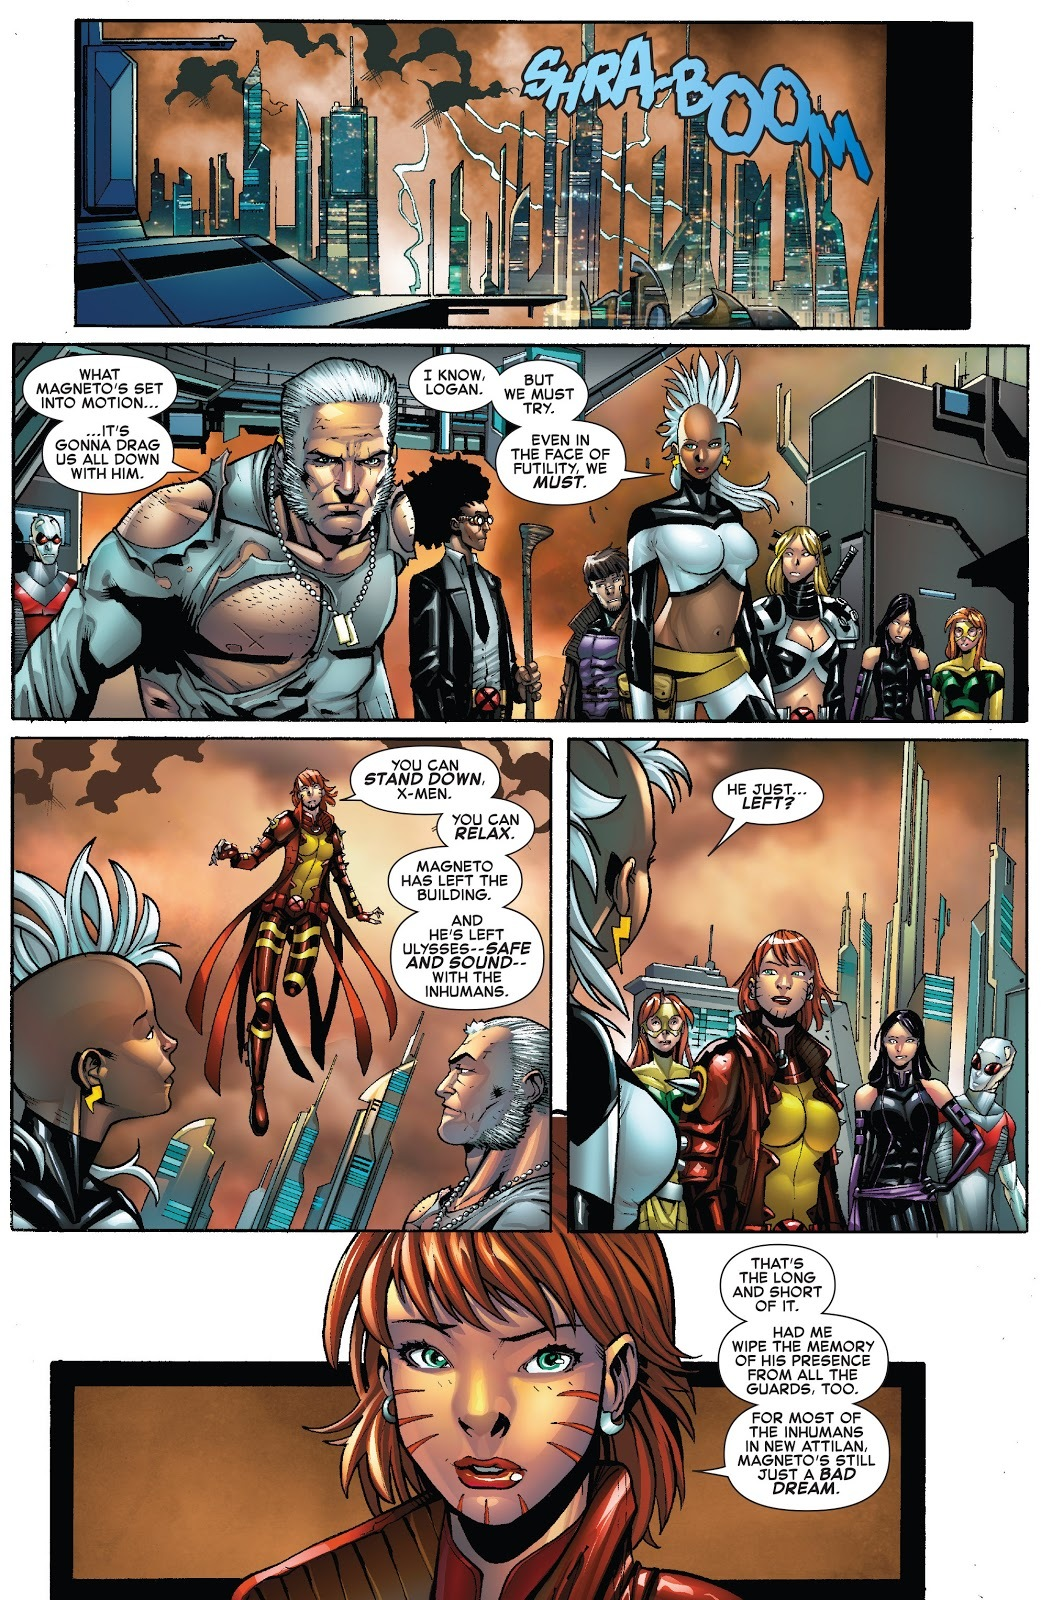 Mindwipes the New Attilan guards of her and Magneto's attack - Civil War 2 X-Men issue 4